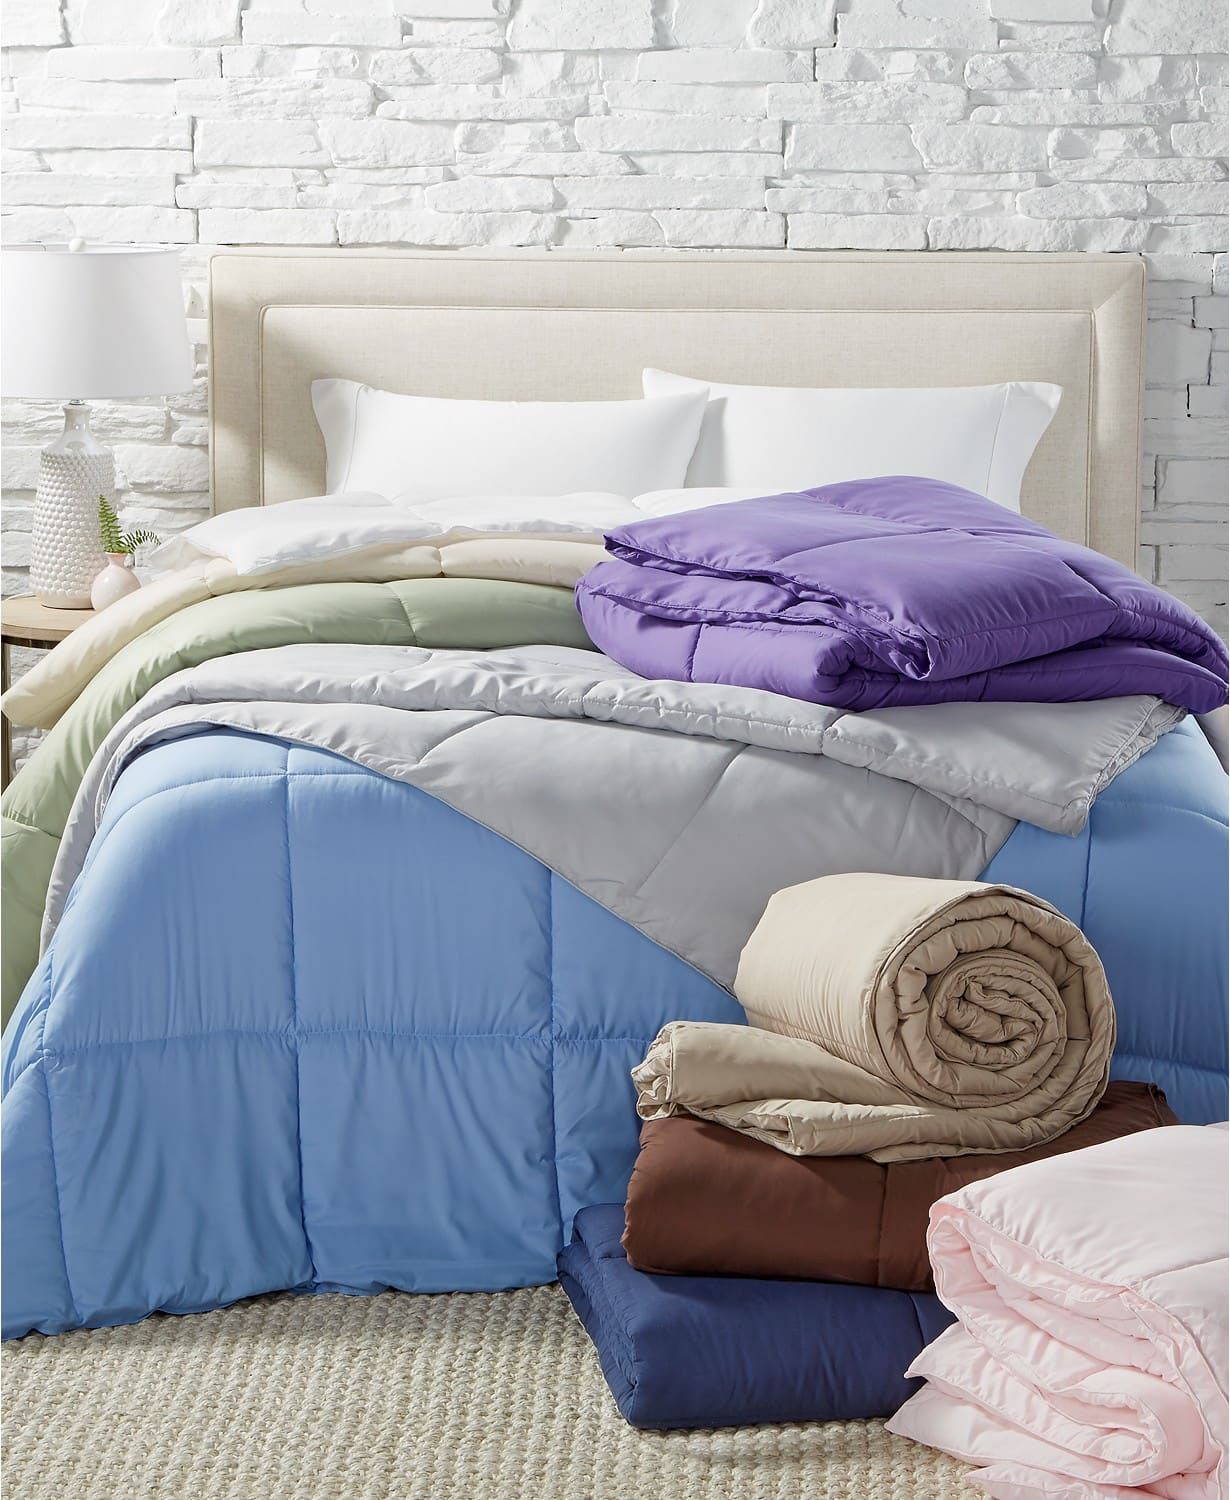 Royal Luxe Lightweight Microfiber Color Down Alternative Comforter (various, all sizes) $19 (or $14.24 w/ Text code) + 6% in Slickdeals Cashback (PC Req'd) + Free ship on $25+